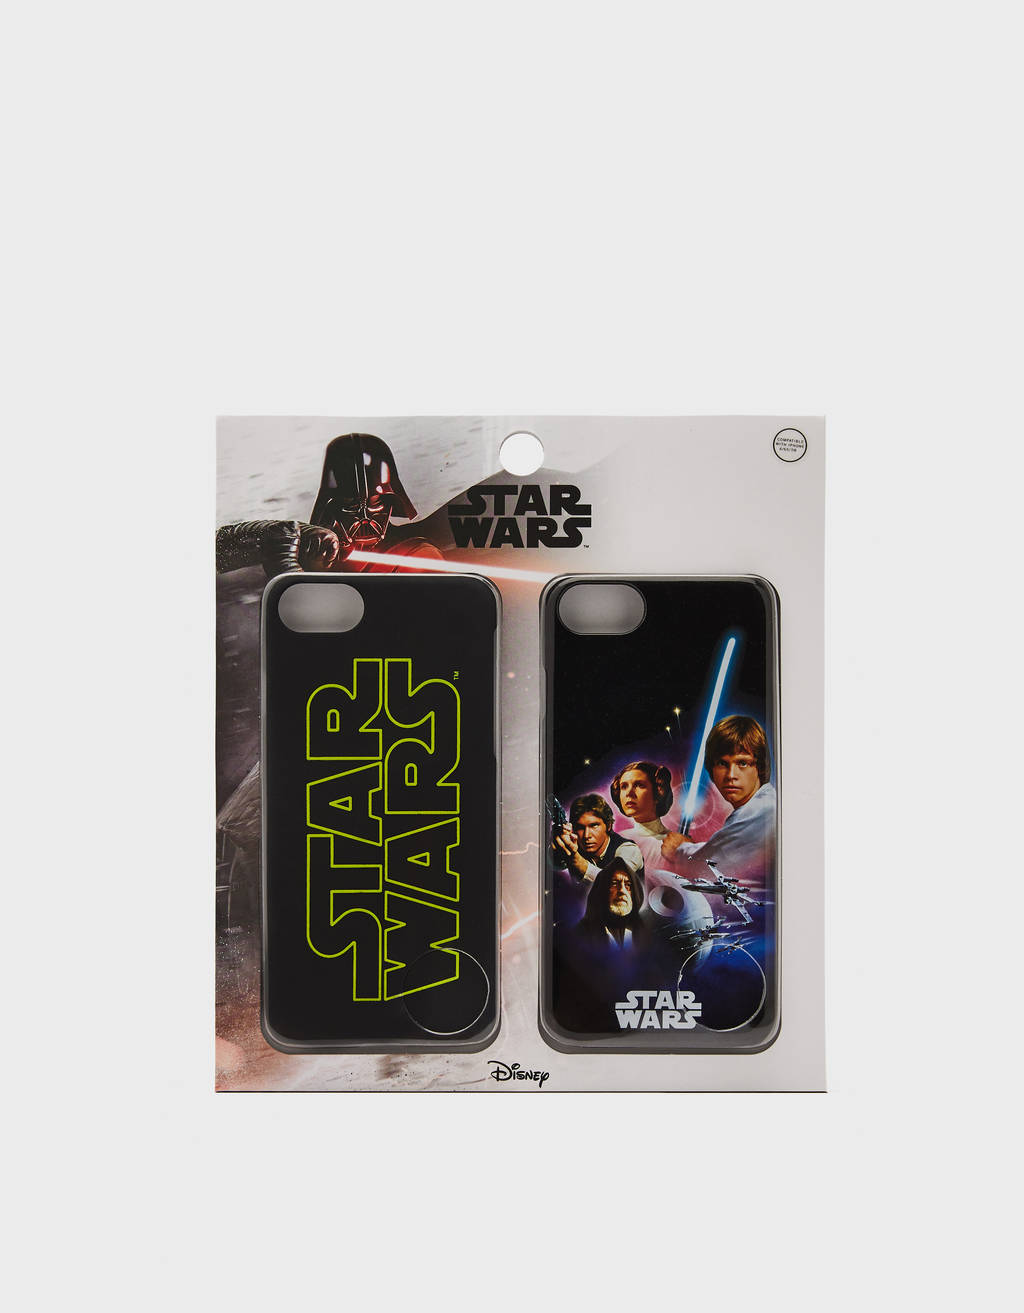 Set maski Star Wars za iPhone 6 / 7 / 8